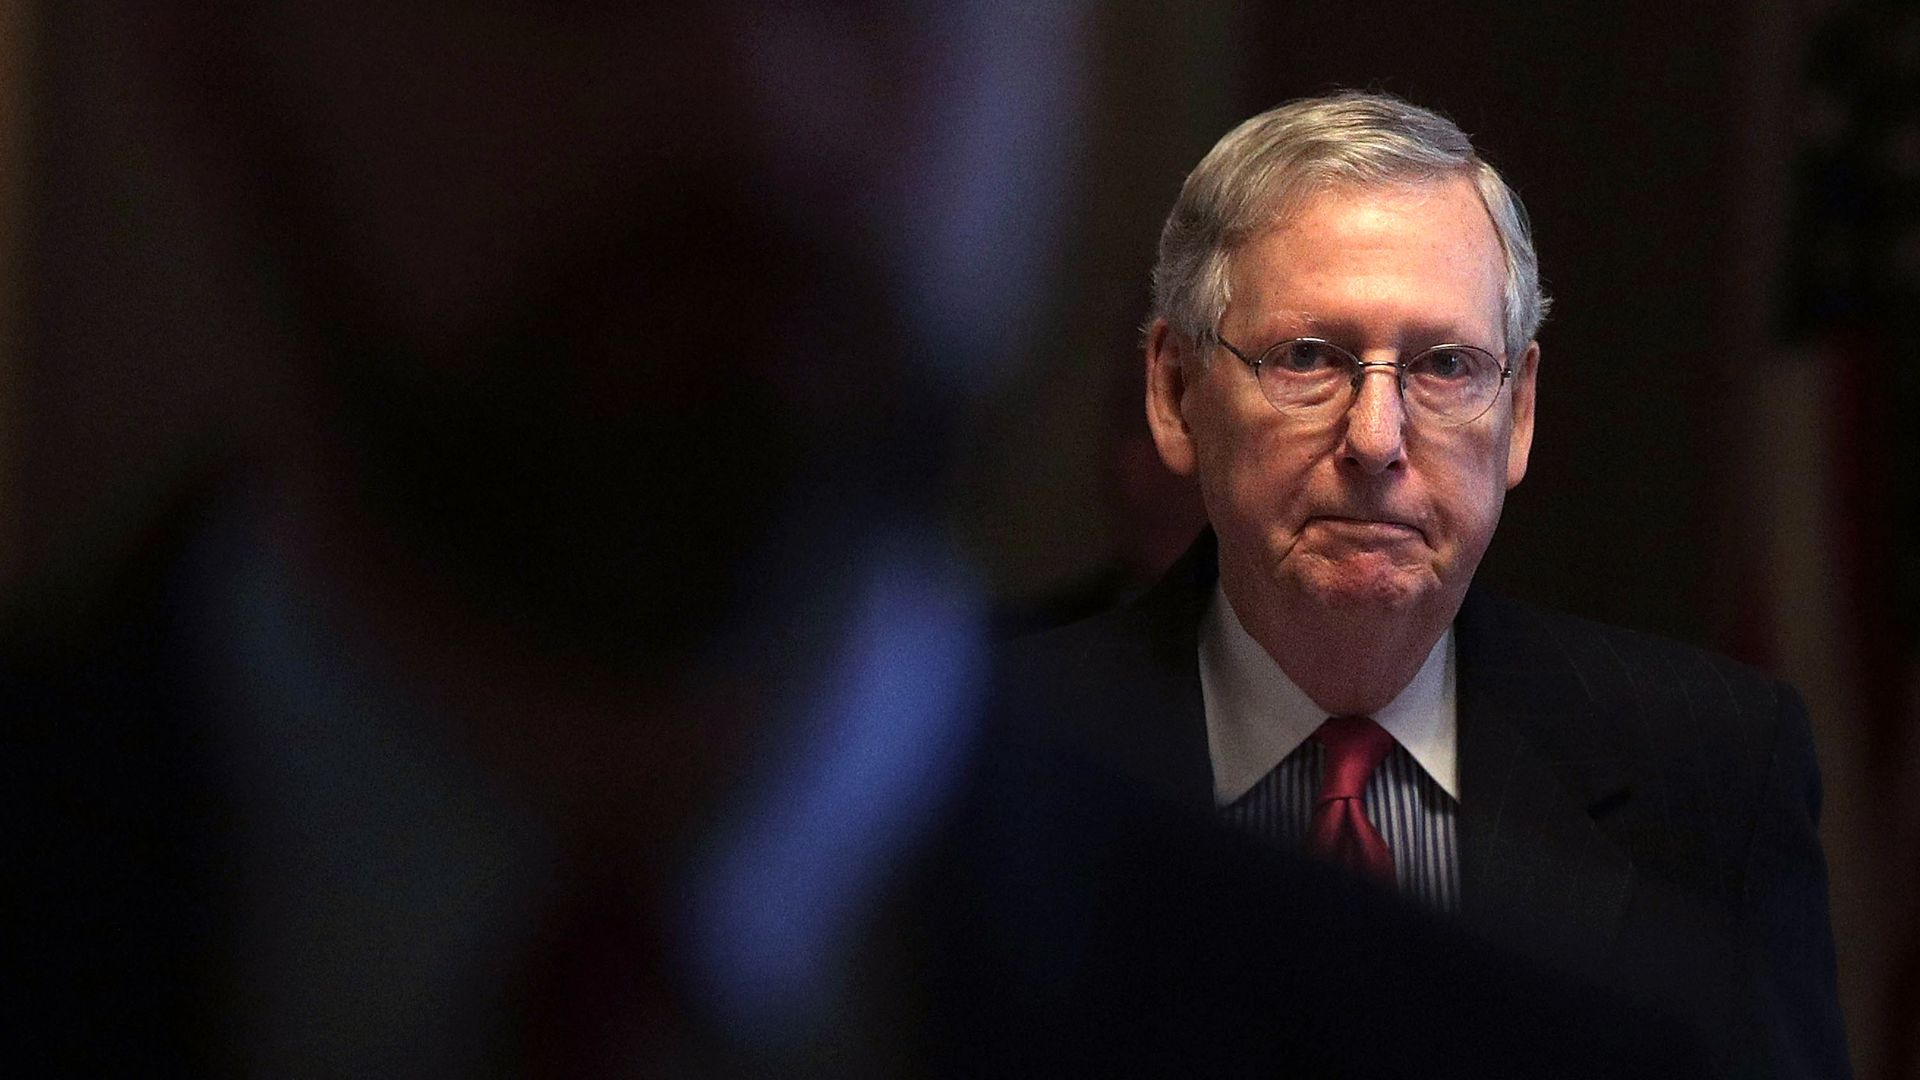 Senate Majority Leader Sen. Mitch McConnell (R-KY). Photo: Alex Wong/Getty Images